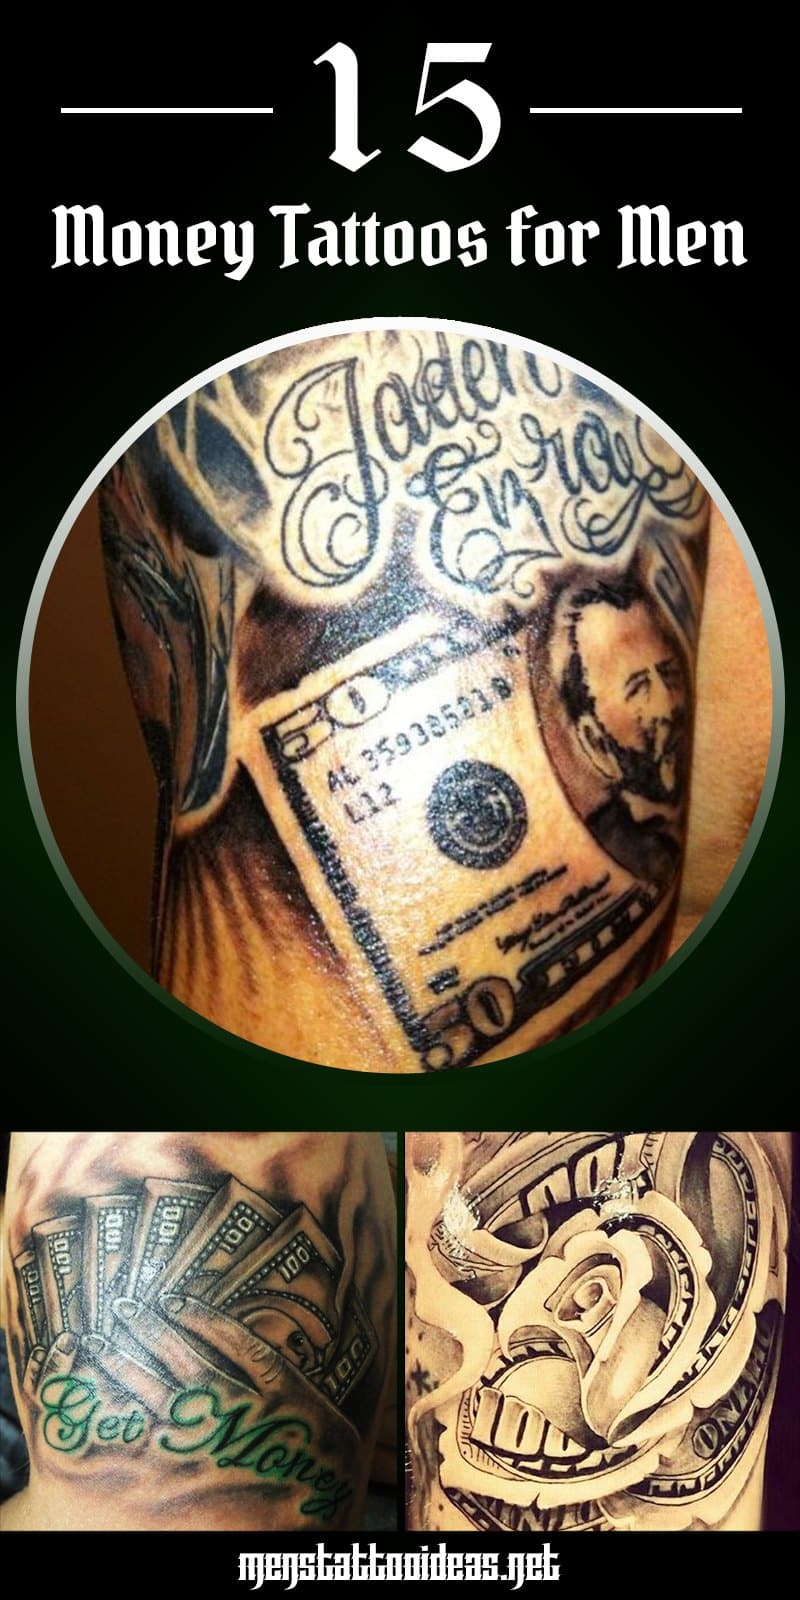 Money tattoo ideas